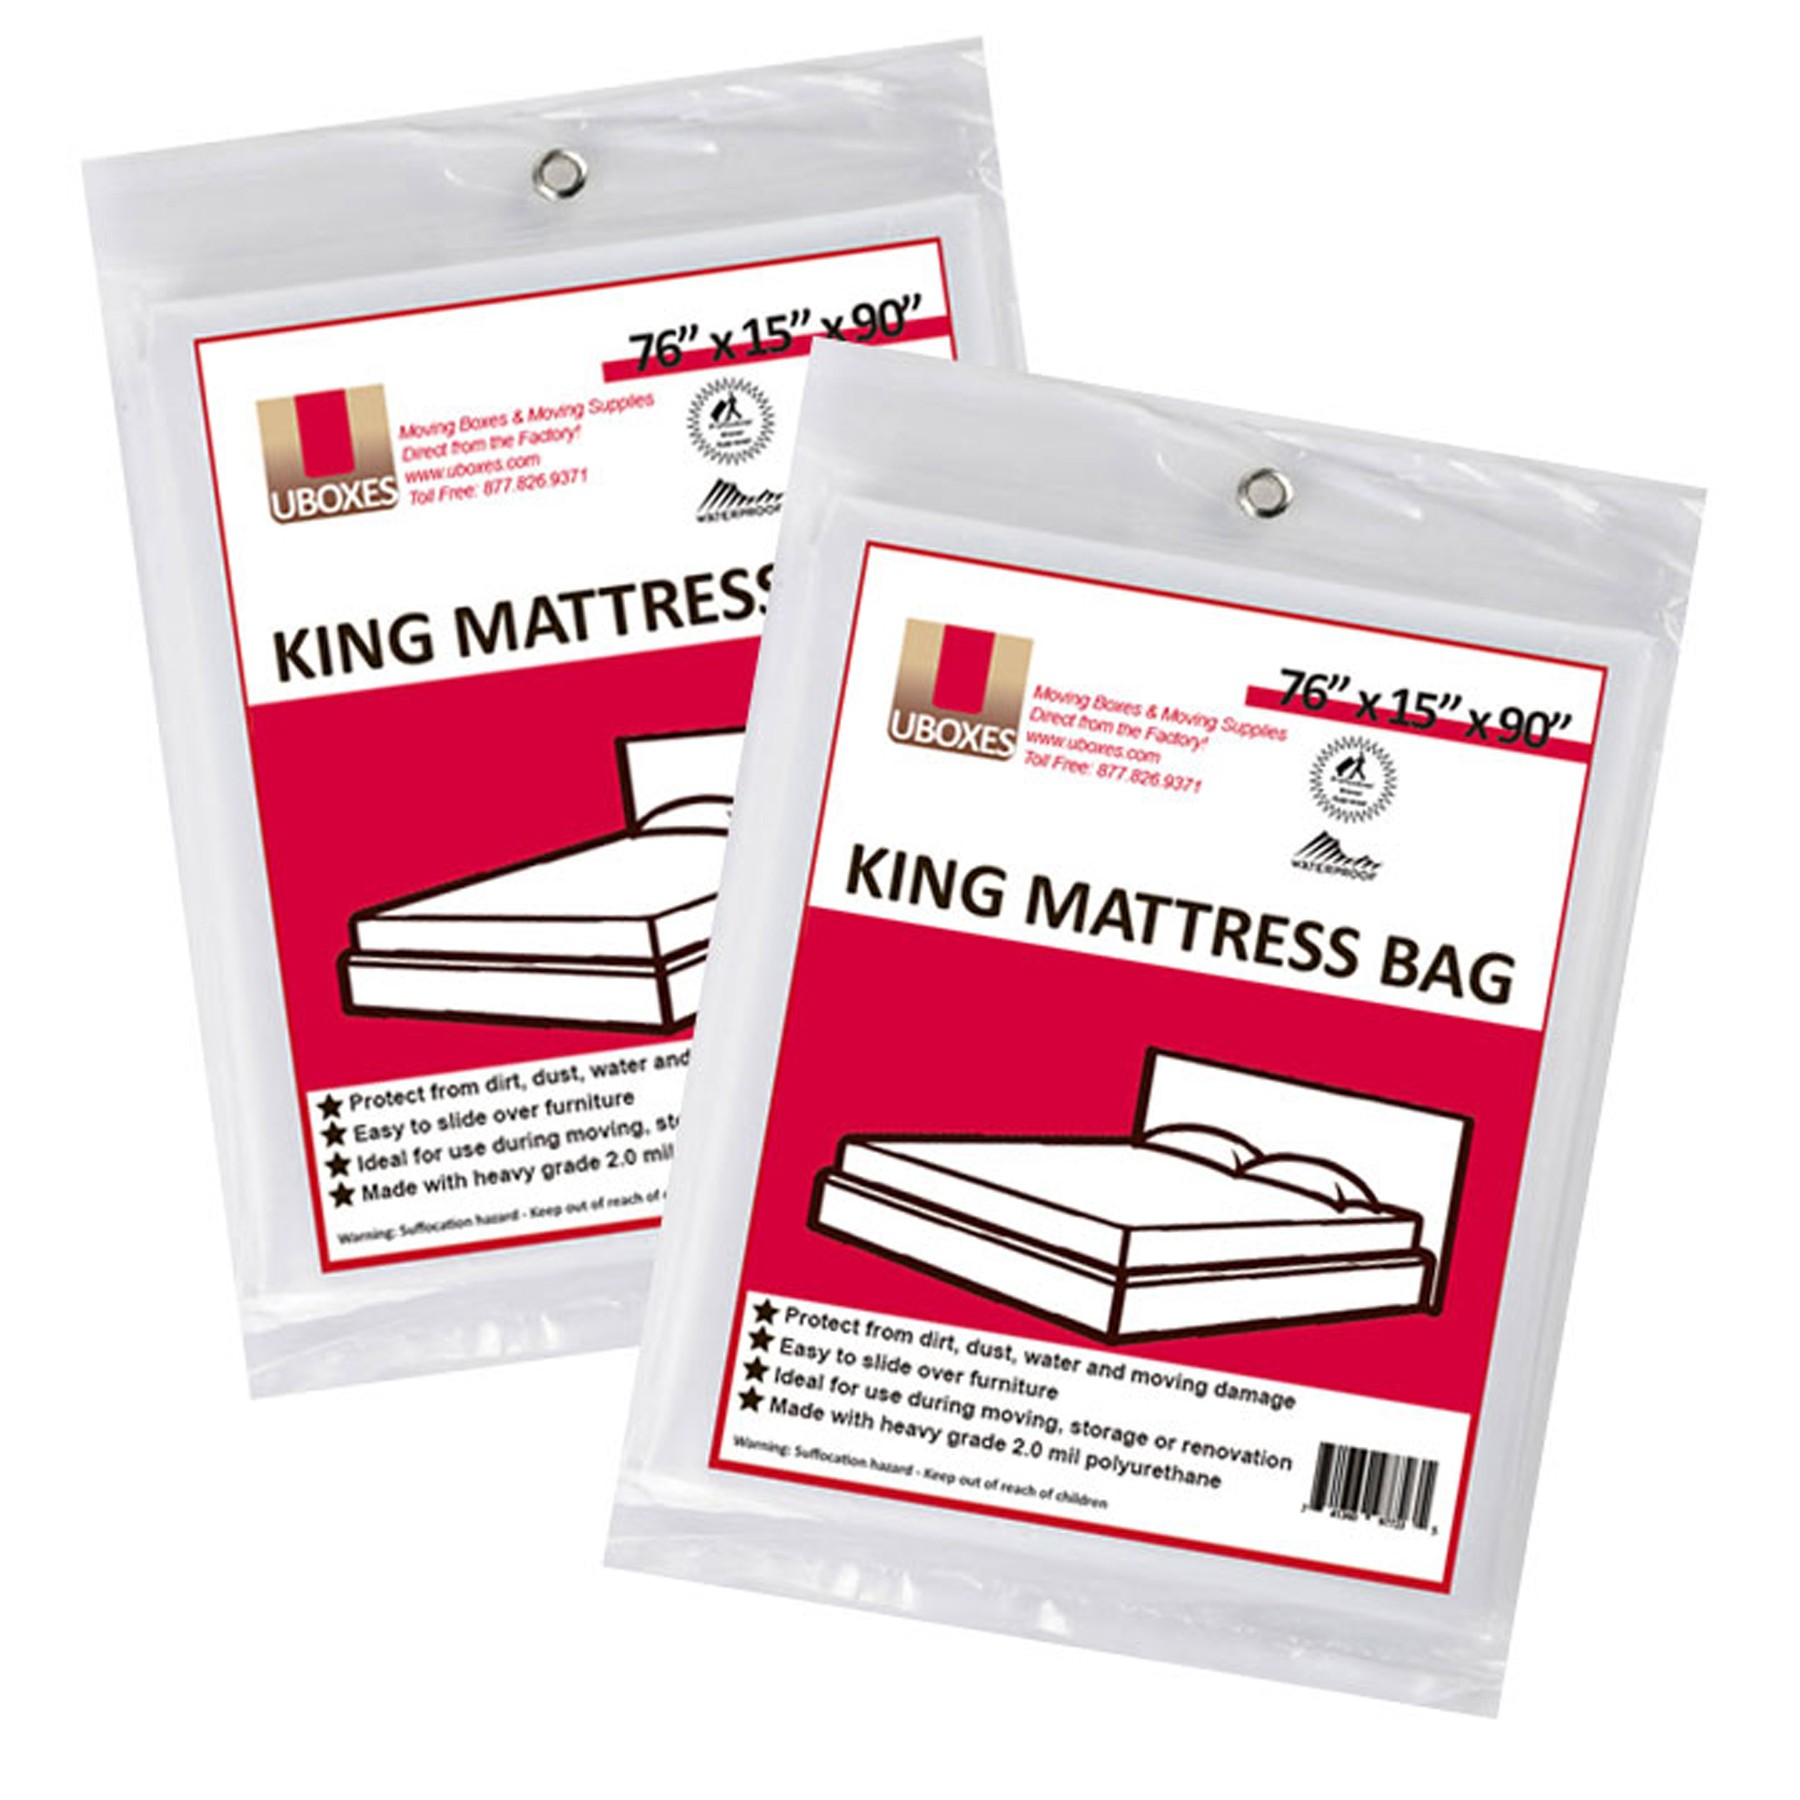 Uboxes King Mattress Poly Covers 76 X 15 X 90 In 2 Pack